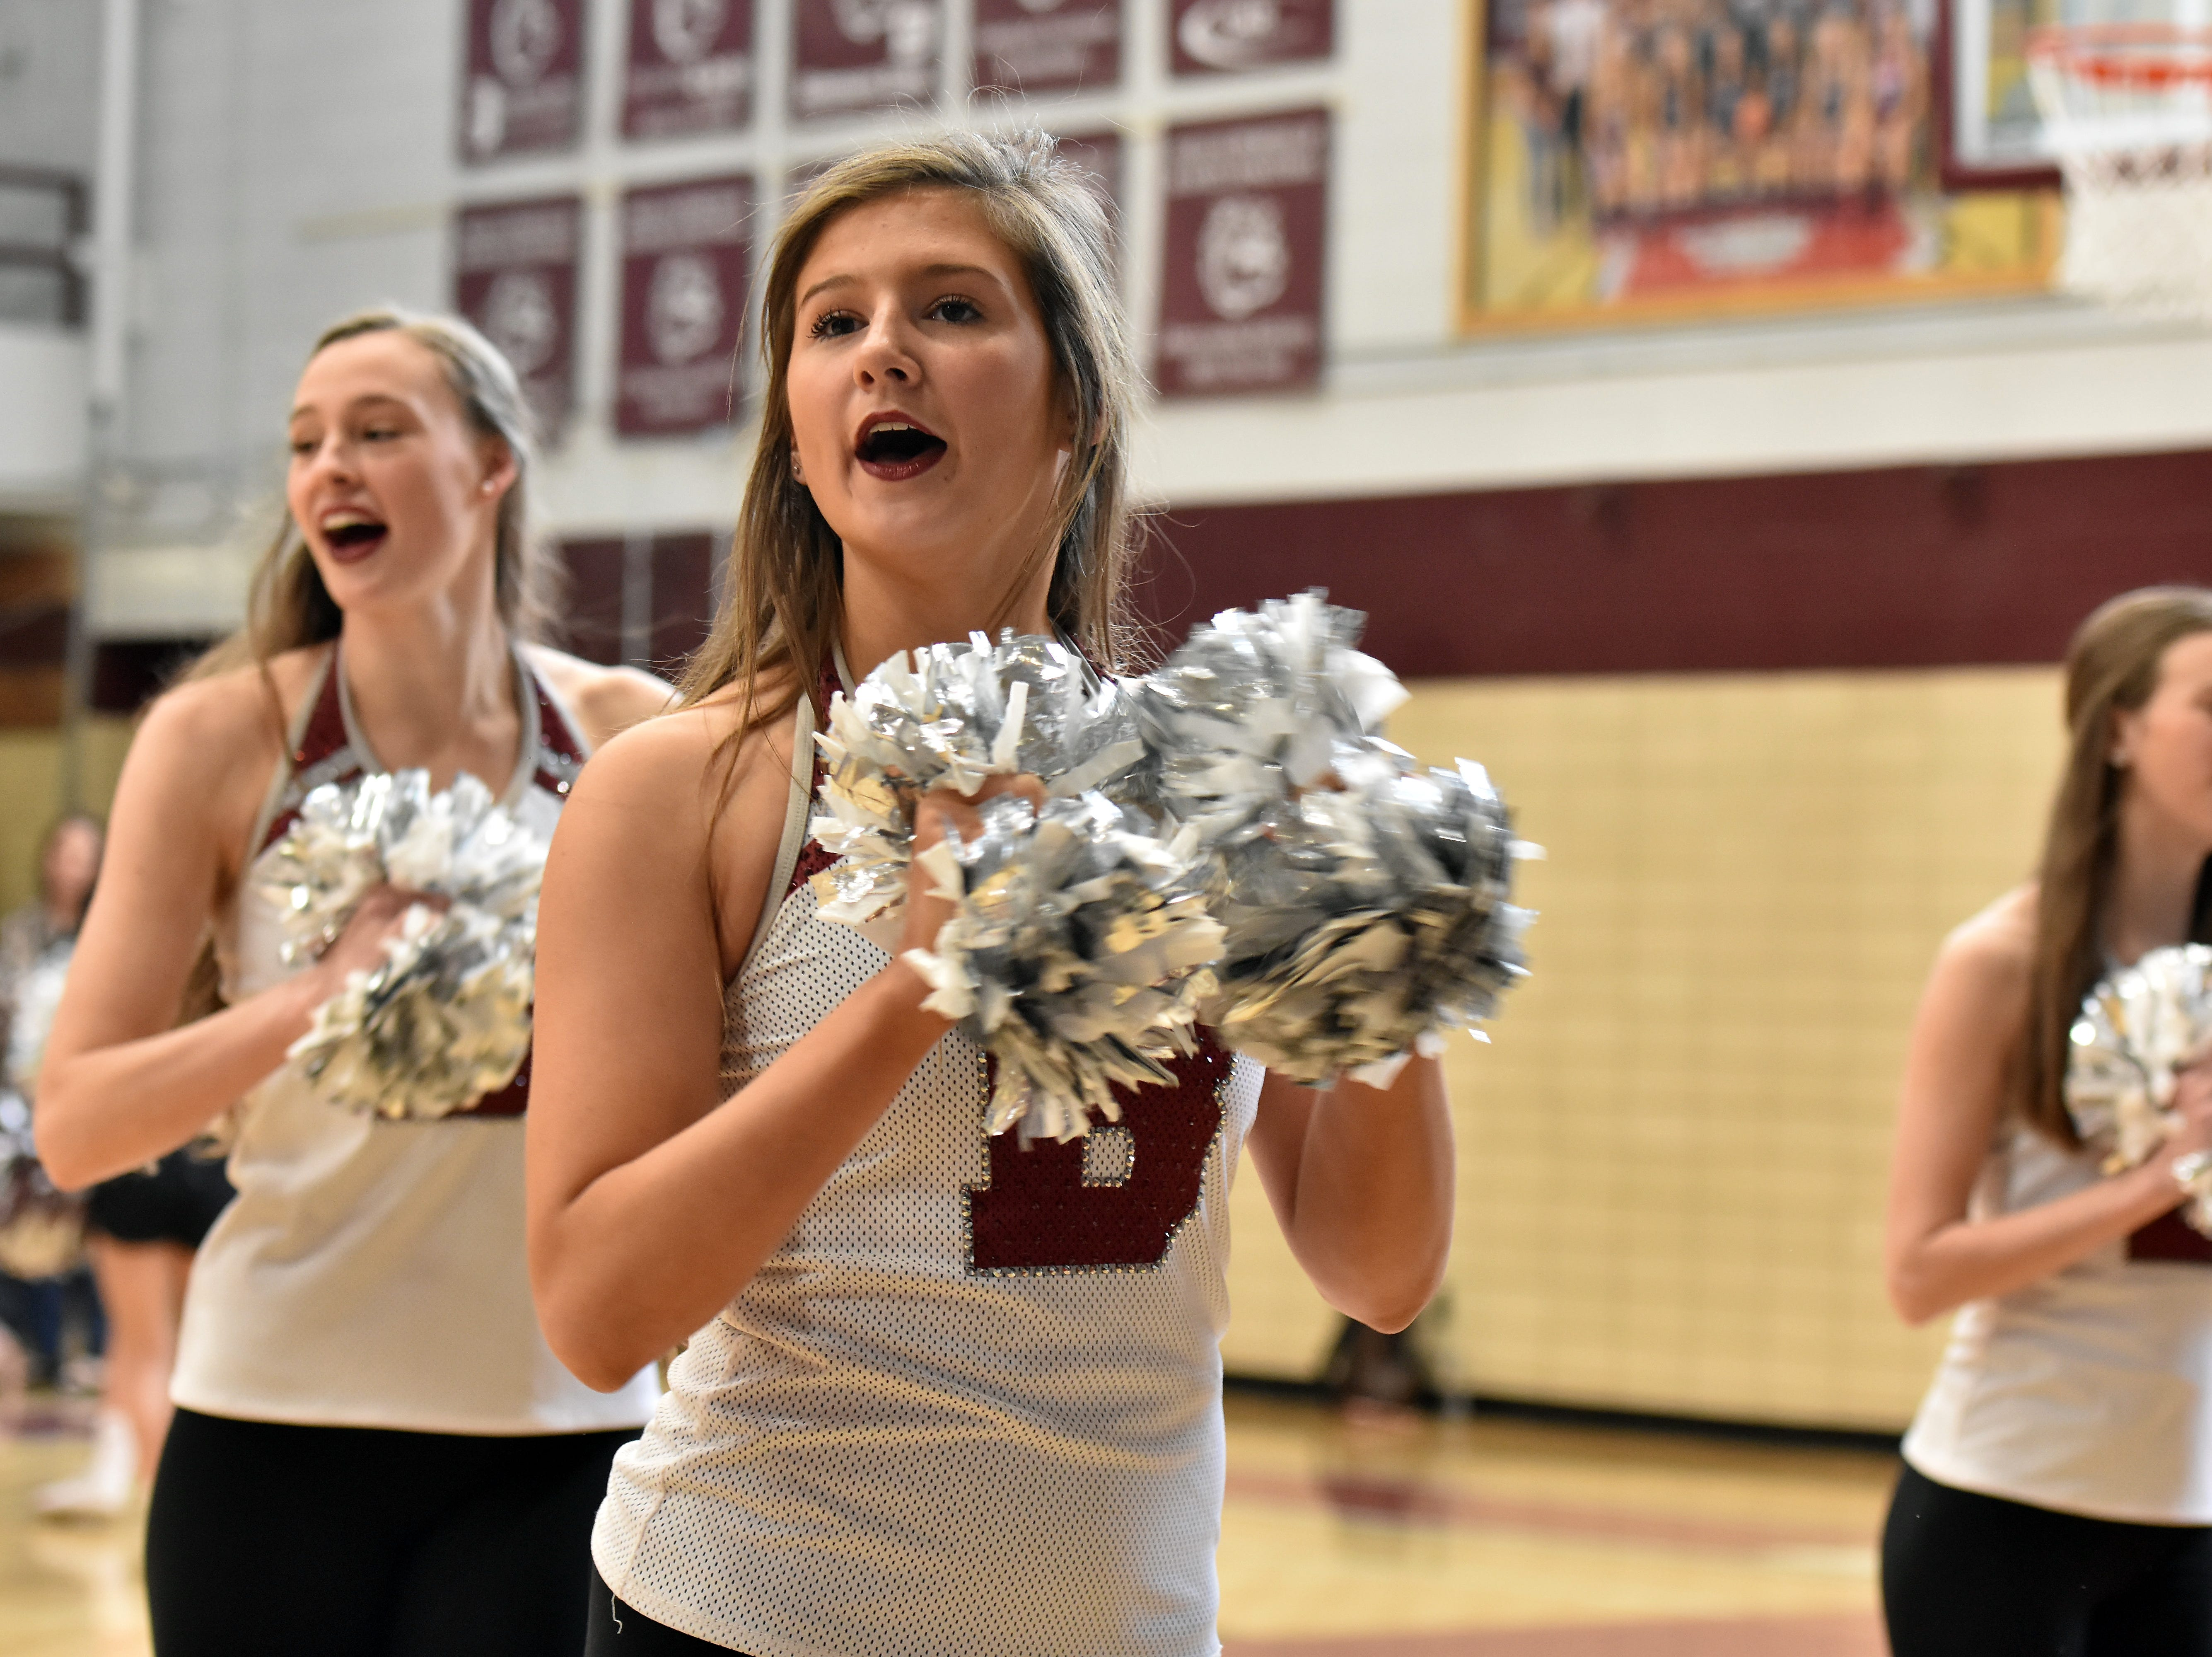 The Bearden High dance team celebrates during a pep rally in honor of the basketball team winning the state championship.